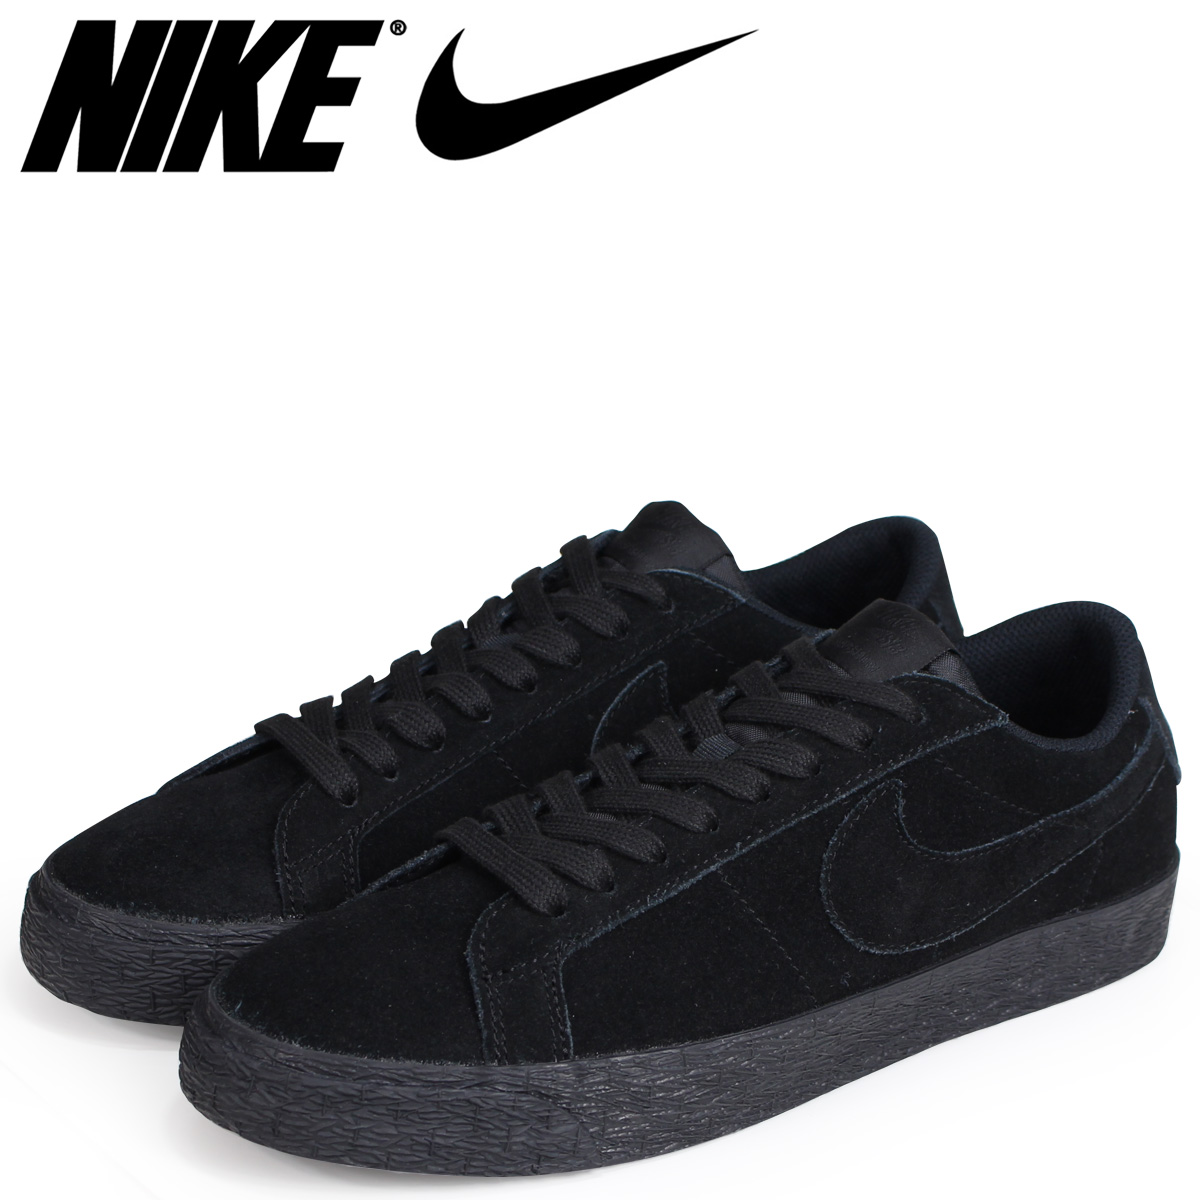 new arrival efd24 71326 NIKE Nike SB blazer low sneakers men ZOOM BLAZER LOW 864,347-004 black black